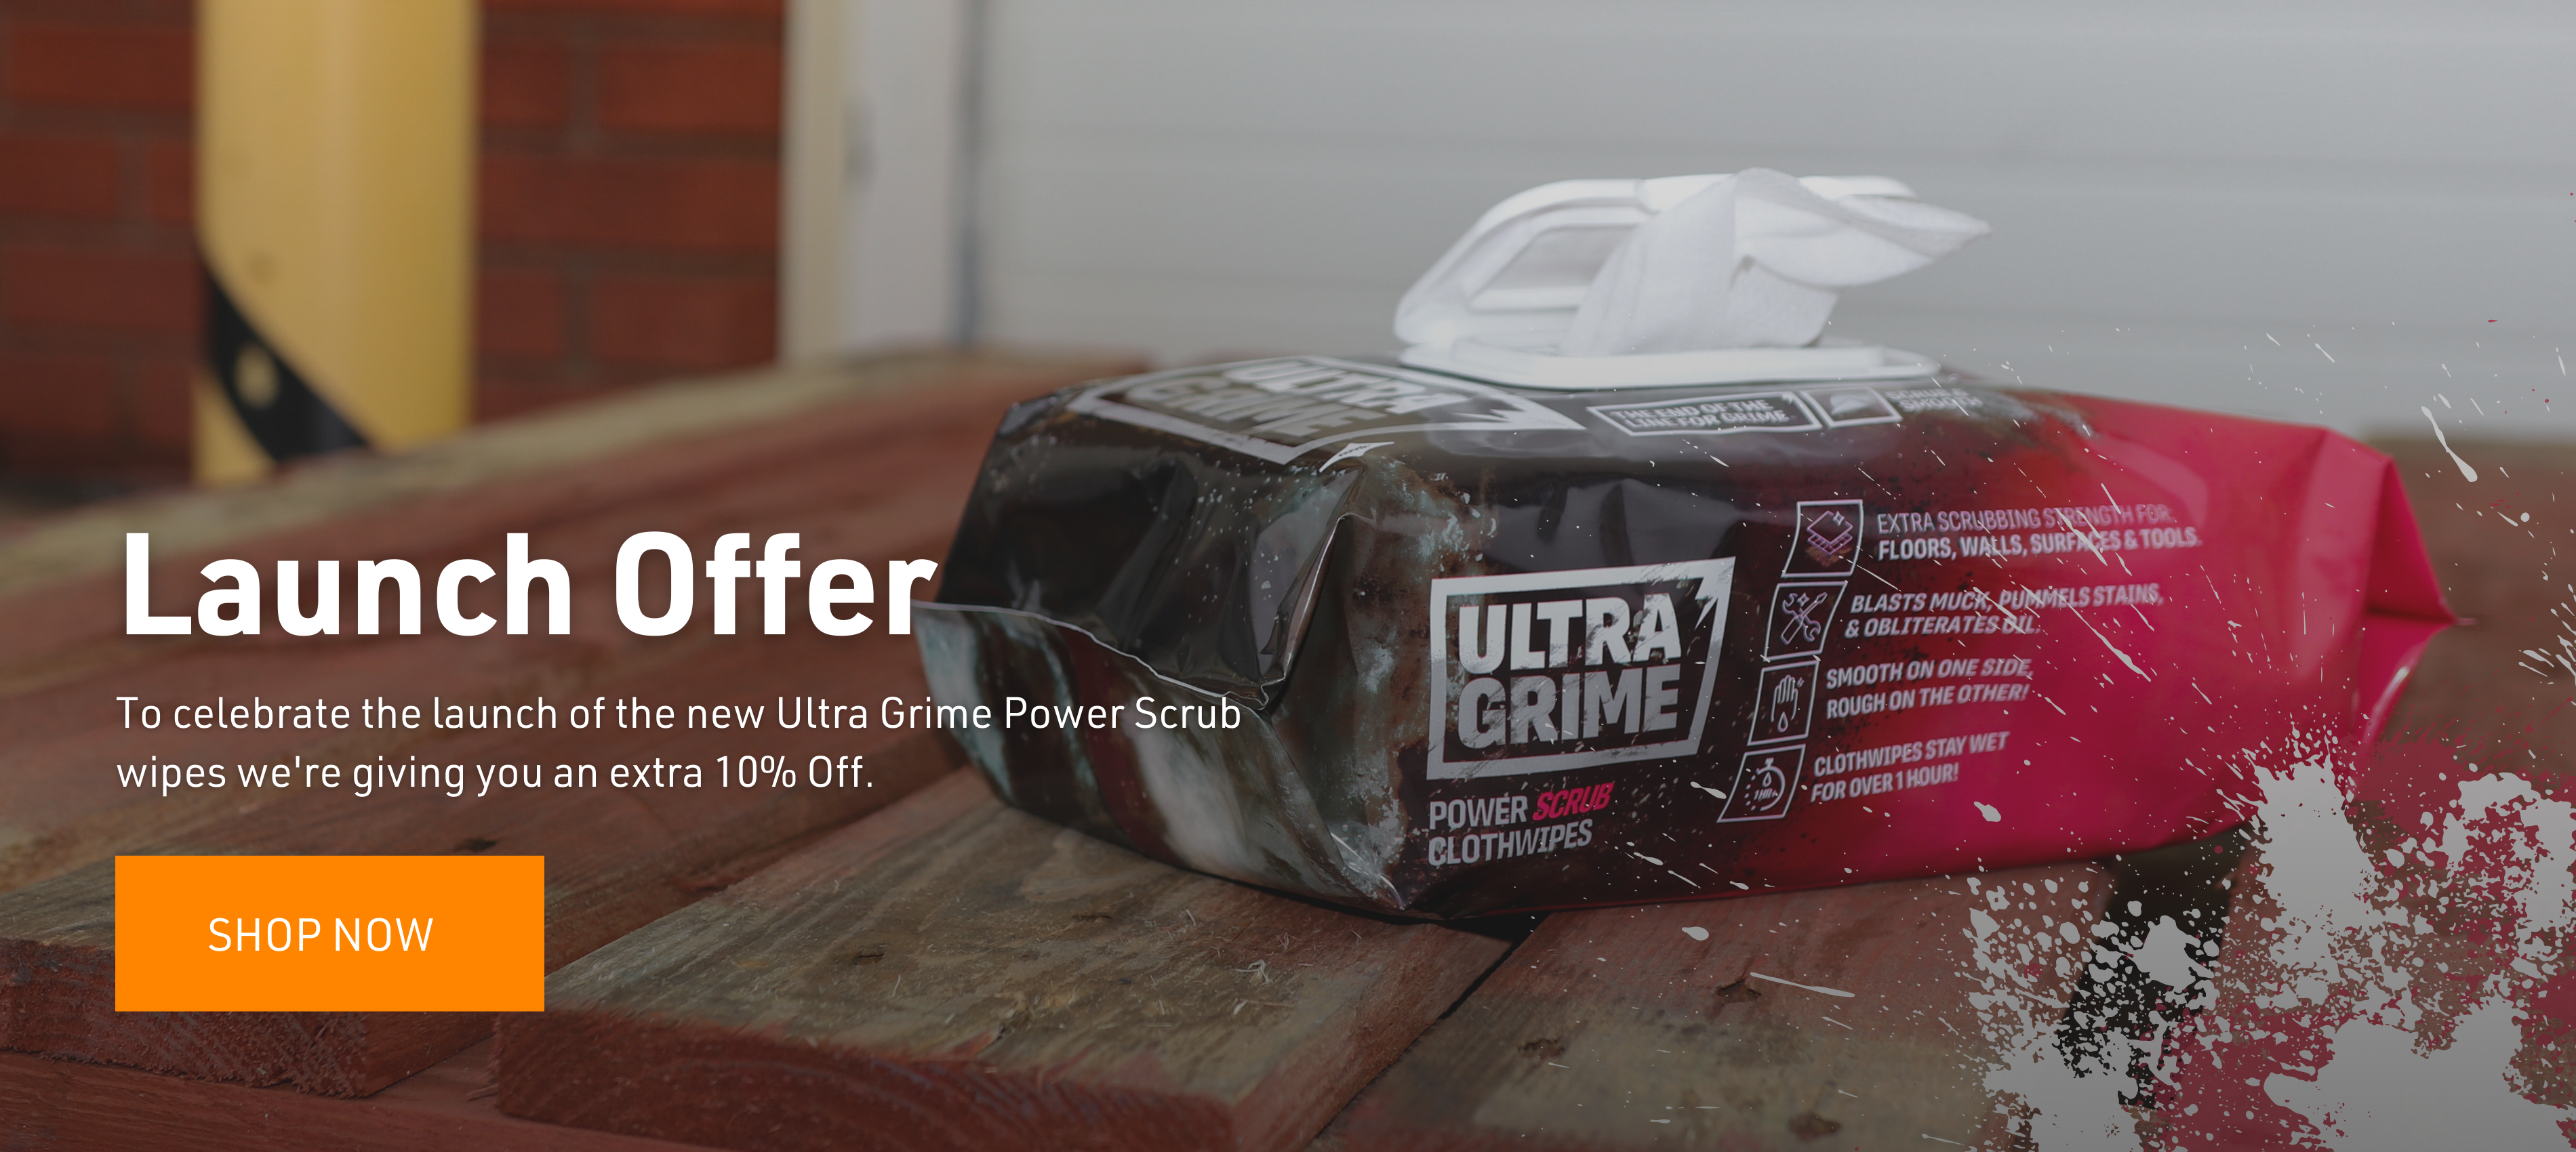 10% Off the new Ultra Grime Power Scrub